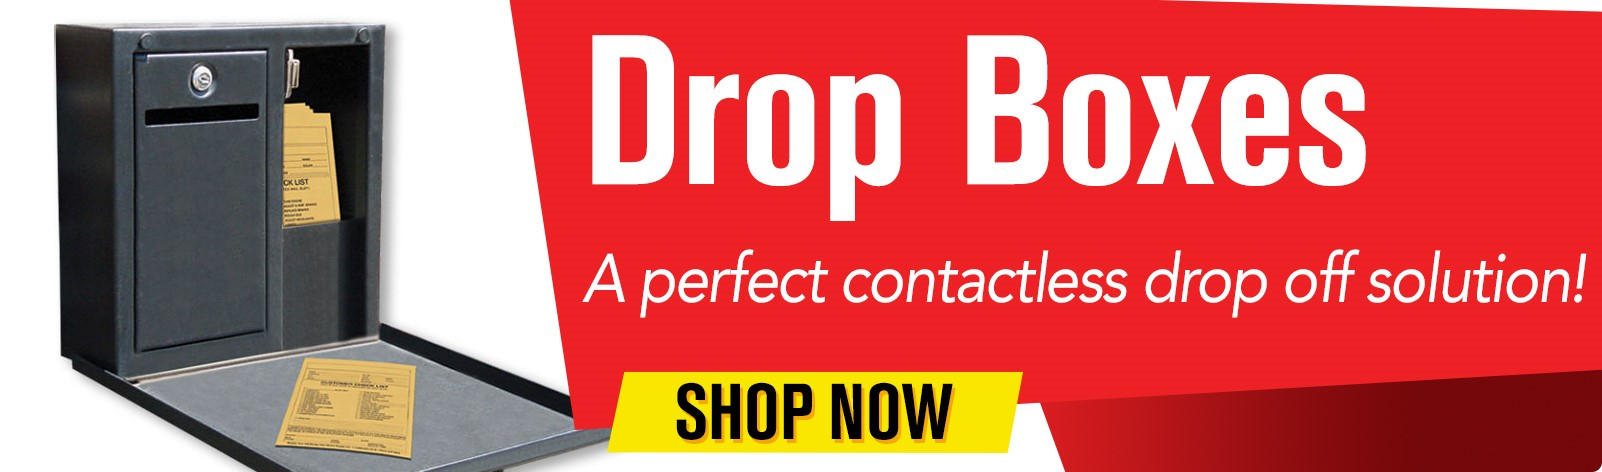 Drop Boxes - A perfect contactless drop off solution!